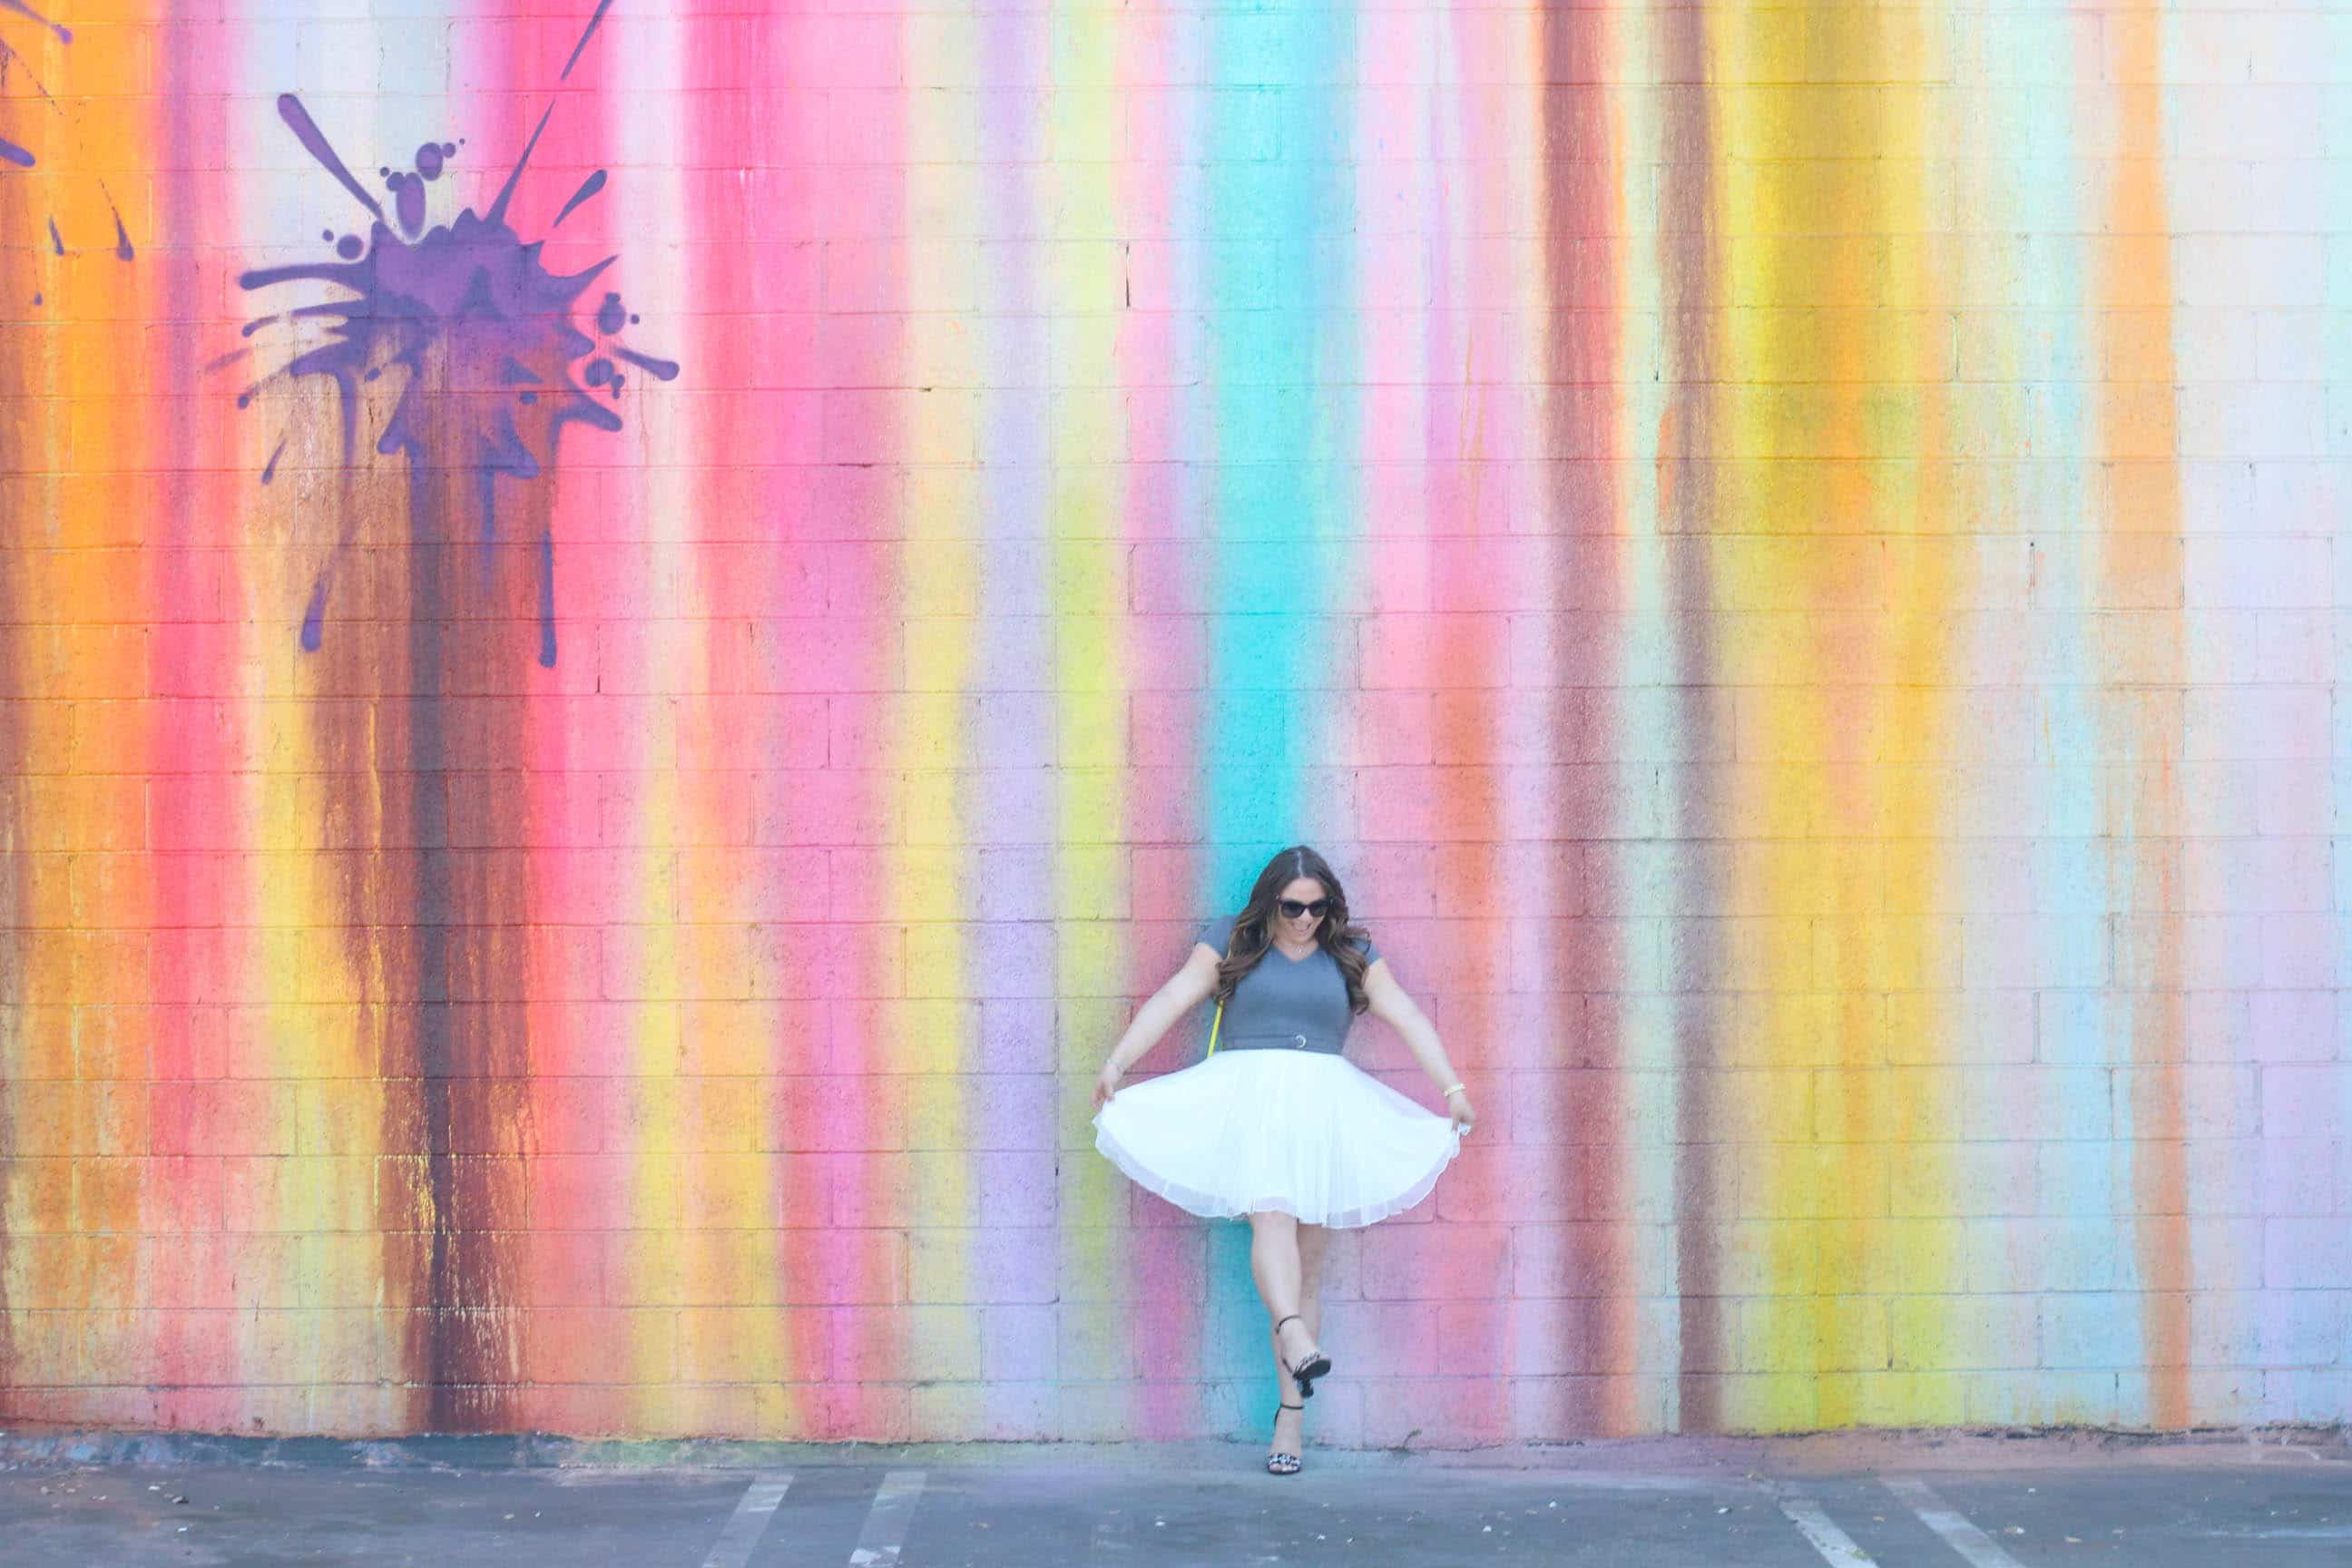 missyonmadison, missyonmadison blog, missyonmadison instagram, melissa tierney, melissa tierney blogger, la blogger, fashion blogger, fashion trends, eshakti, eshakti dress, tulle skirt, tulle dress, bloglovin, style blog, style blogger, spring style, wall crawl, la colorful walls, la wall murals, gigi ny crossbody bag, gigi new york bag, gigi new york crossbody bag, gray bodysuit, sugar brand heels, sugar brand shoes, black floral heeled sandals, black floral ankle strap heels, fendi sunglasses, spring style 2018,